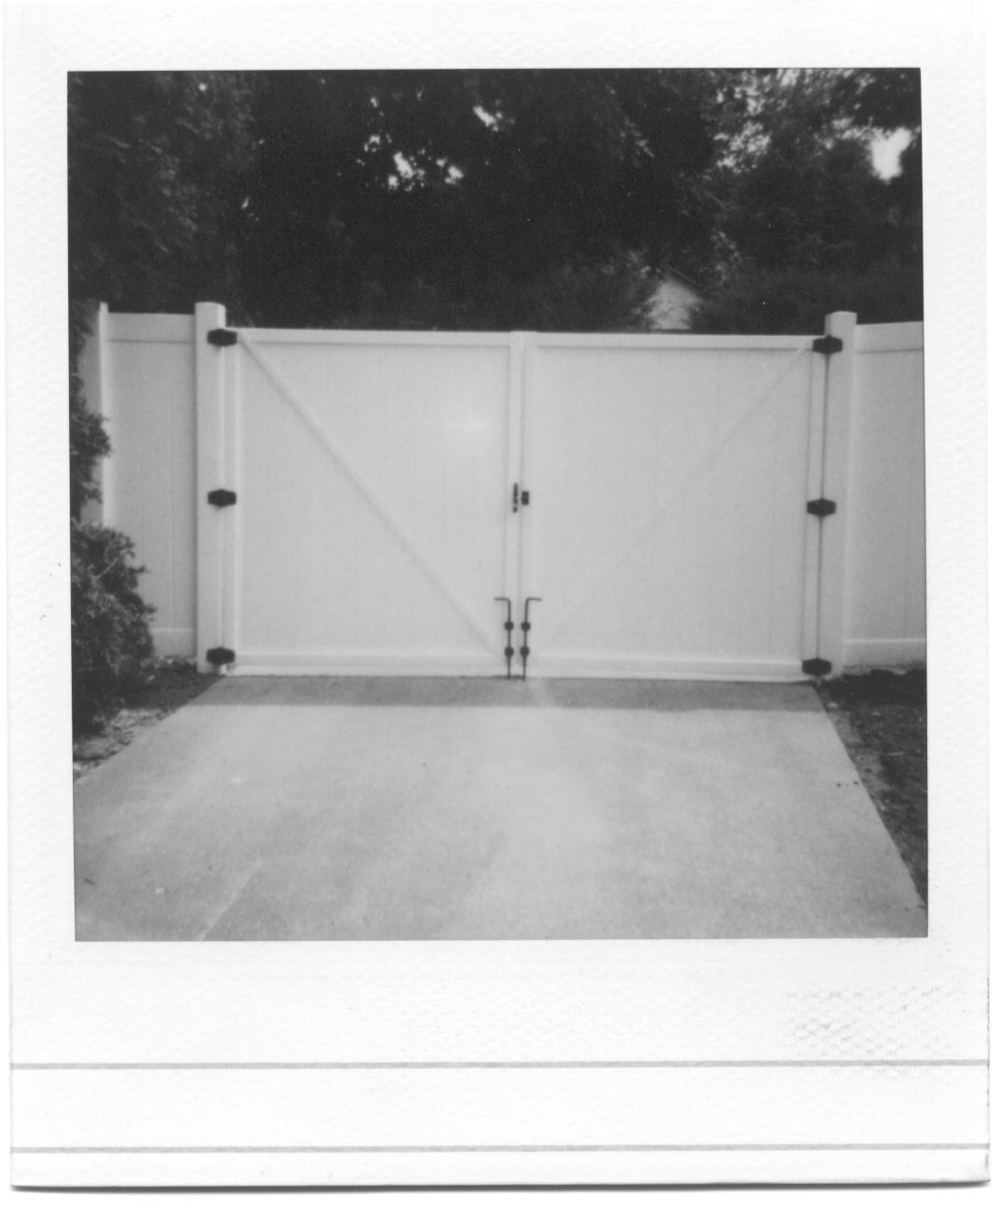 Vinyl Double Privacy Gate